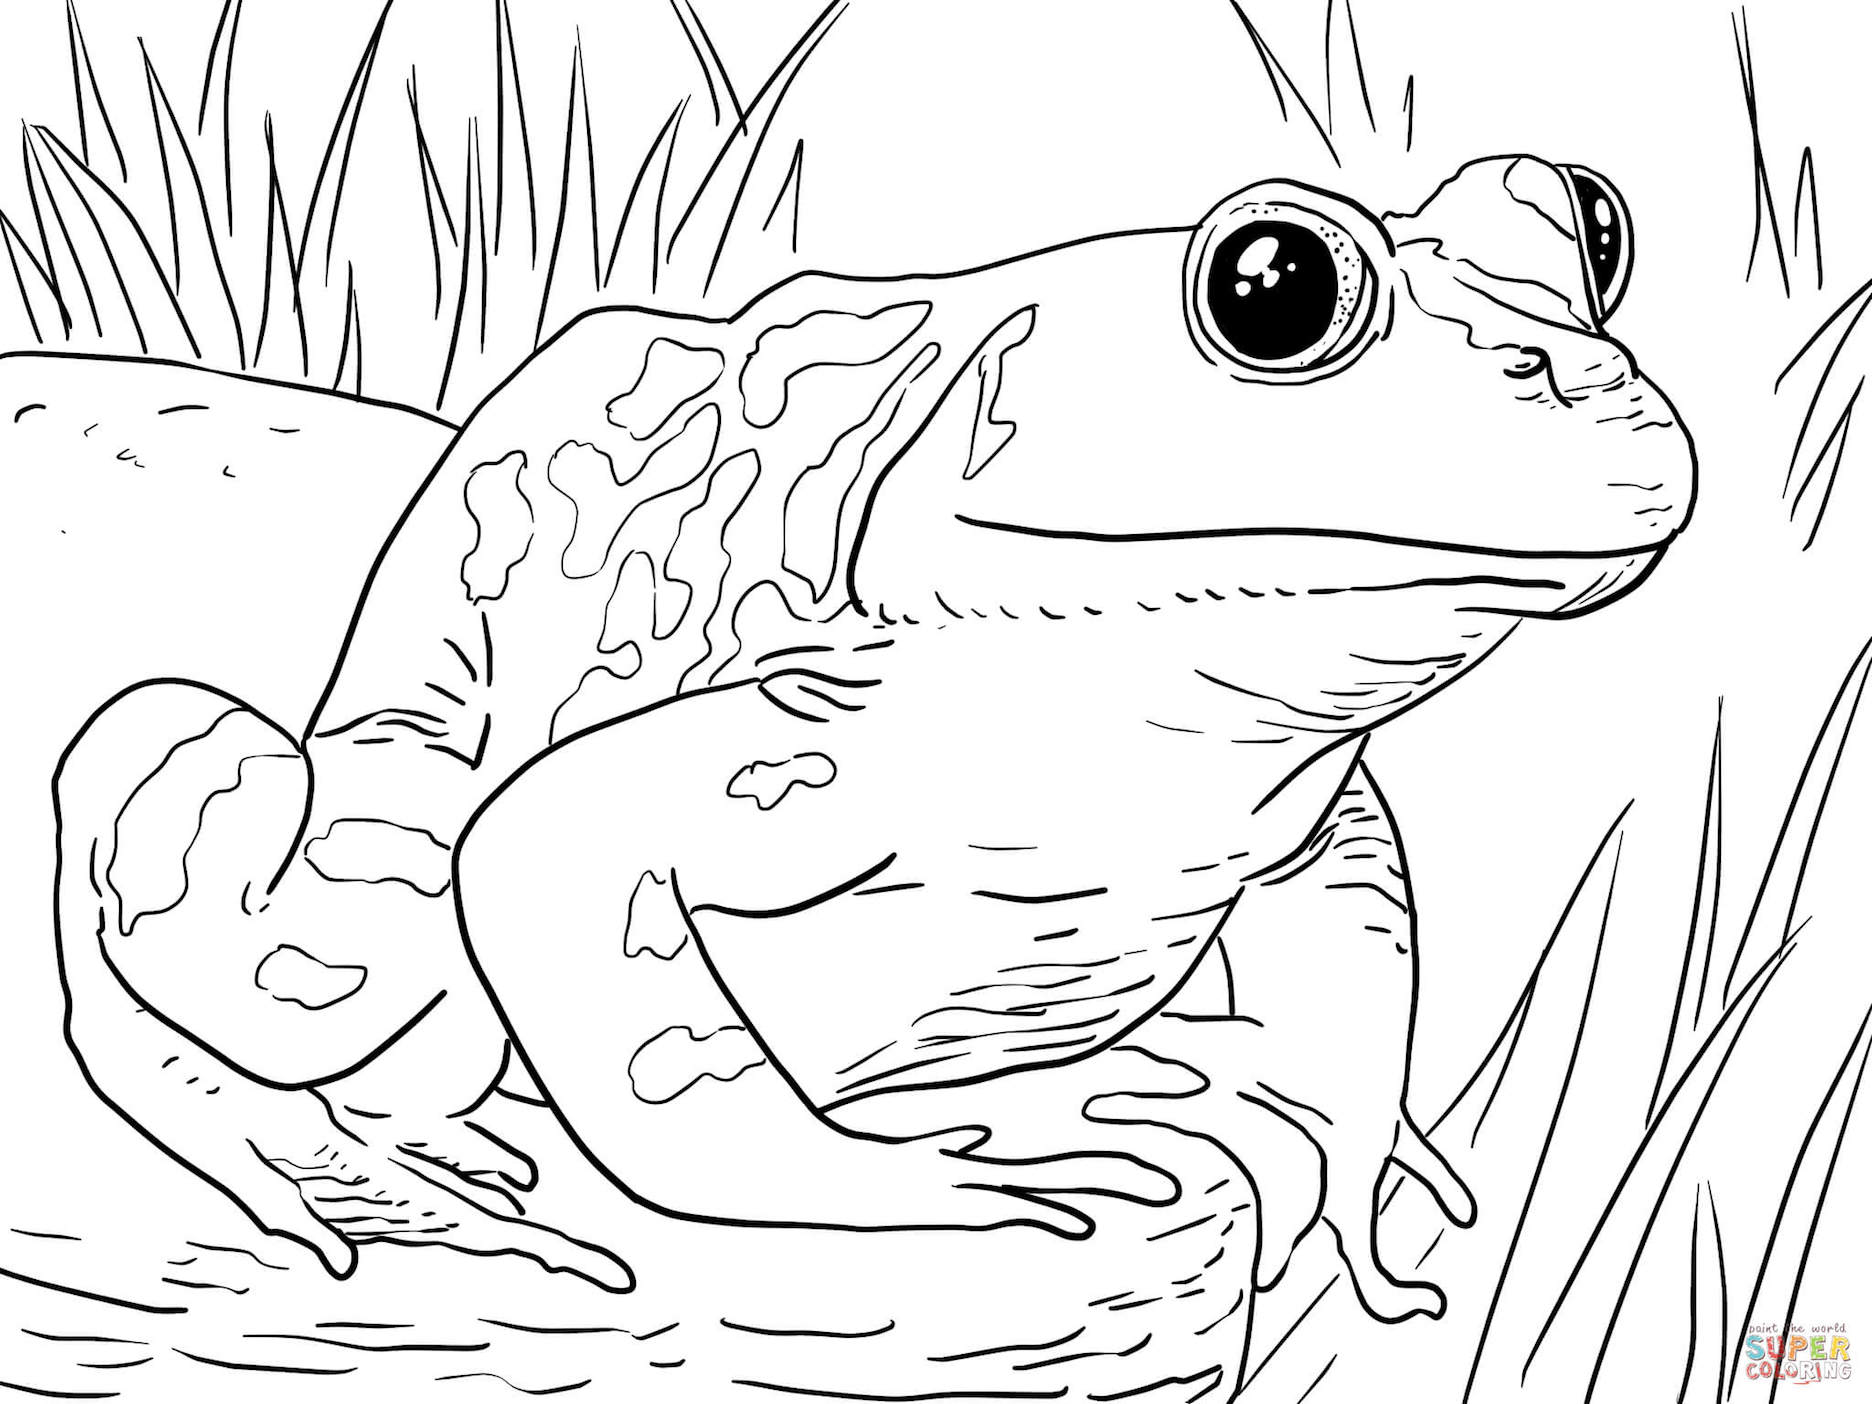 frog coloring book frog coloring pages clipart and other free printable frog book coloring